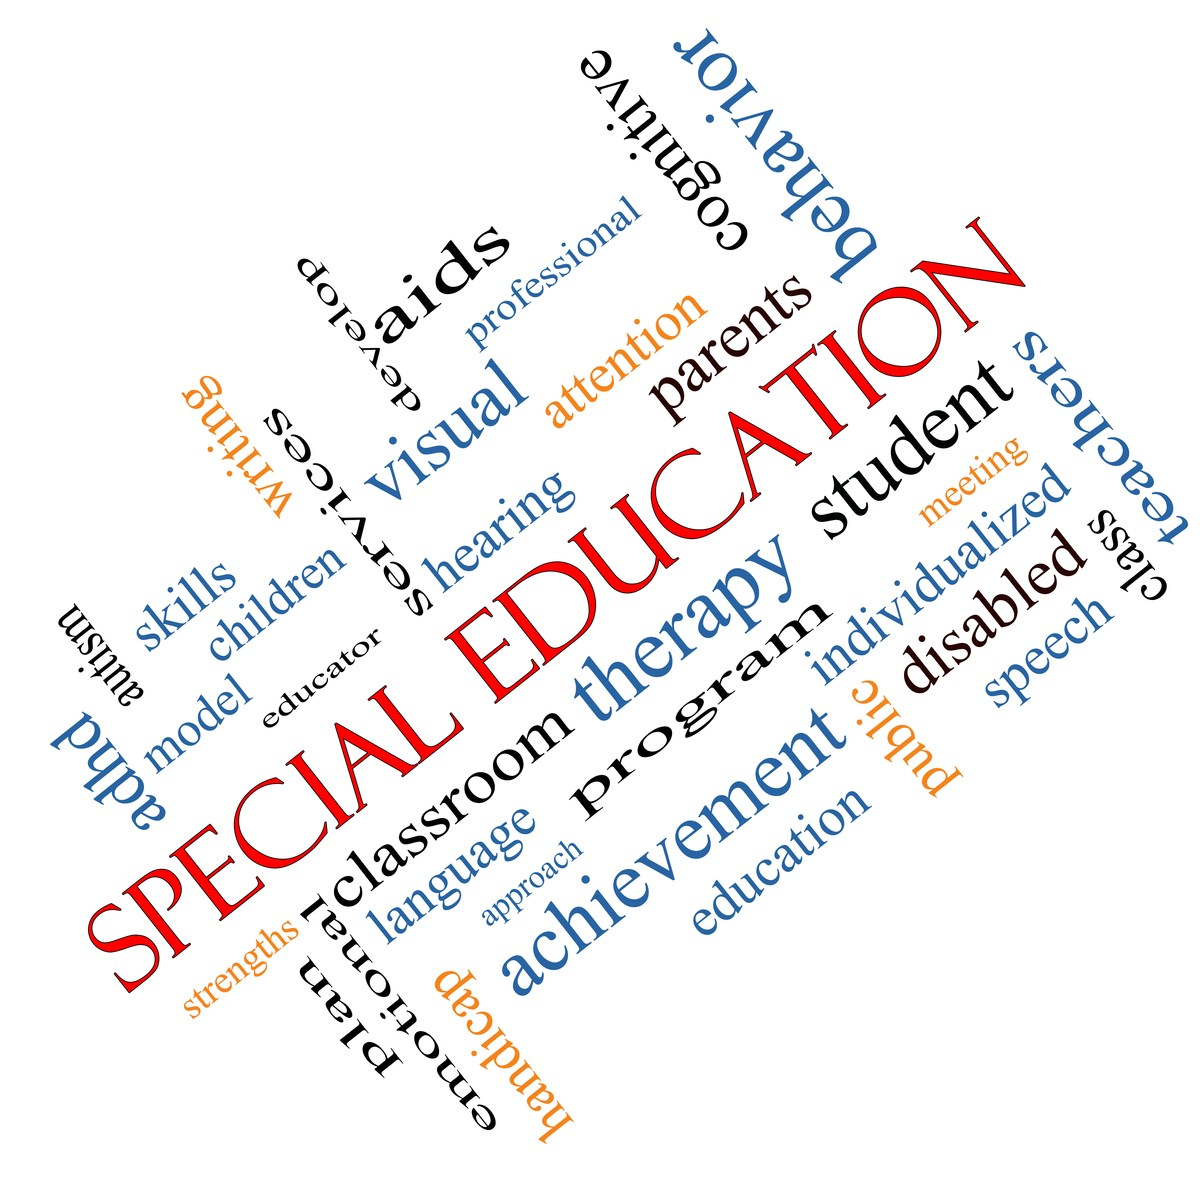 A graphic displaying different words used in special education, such as visual, hearing, therapy, disabled, speech, skills, etc.